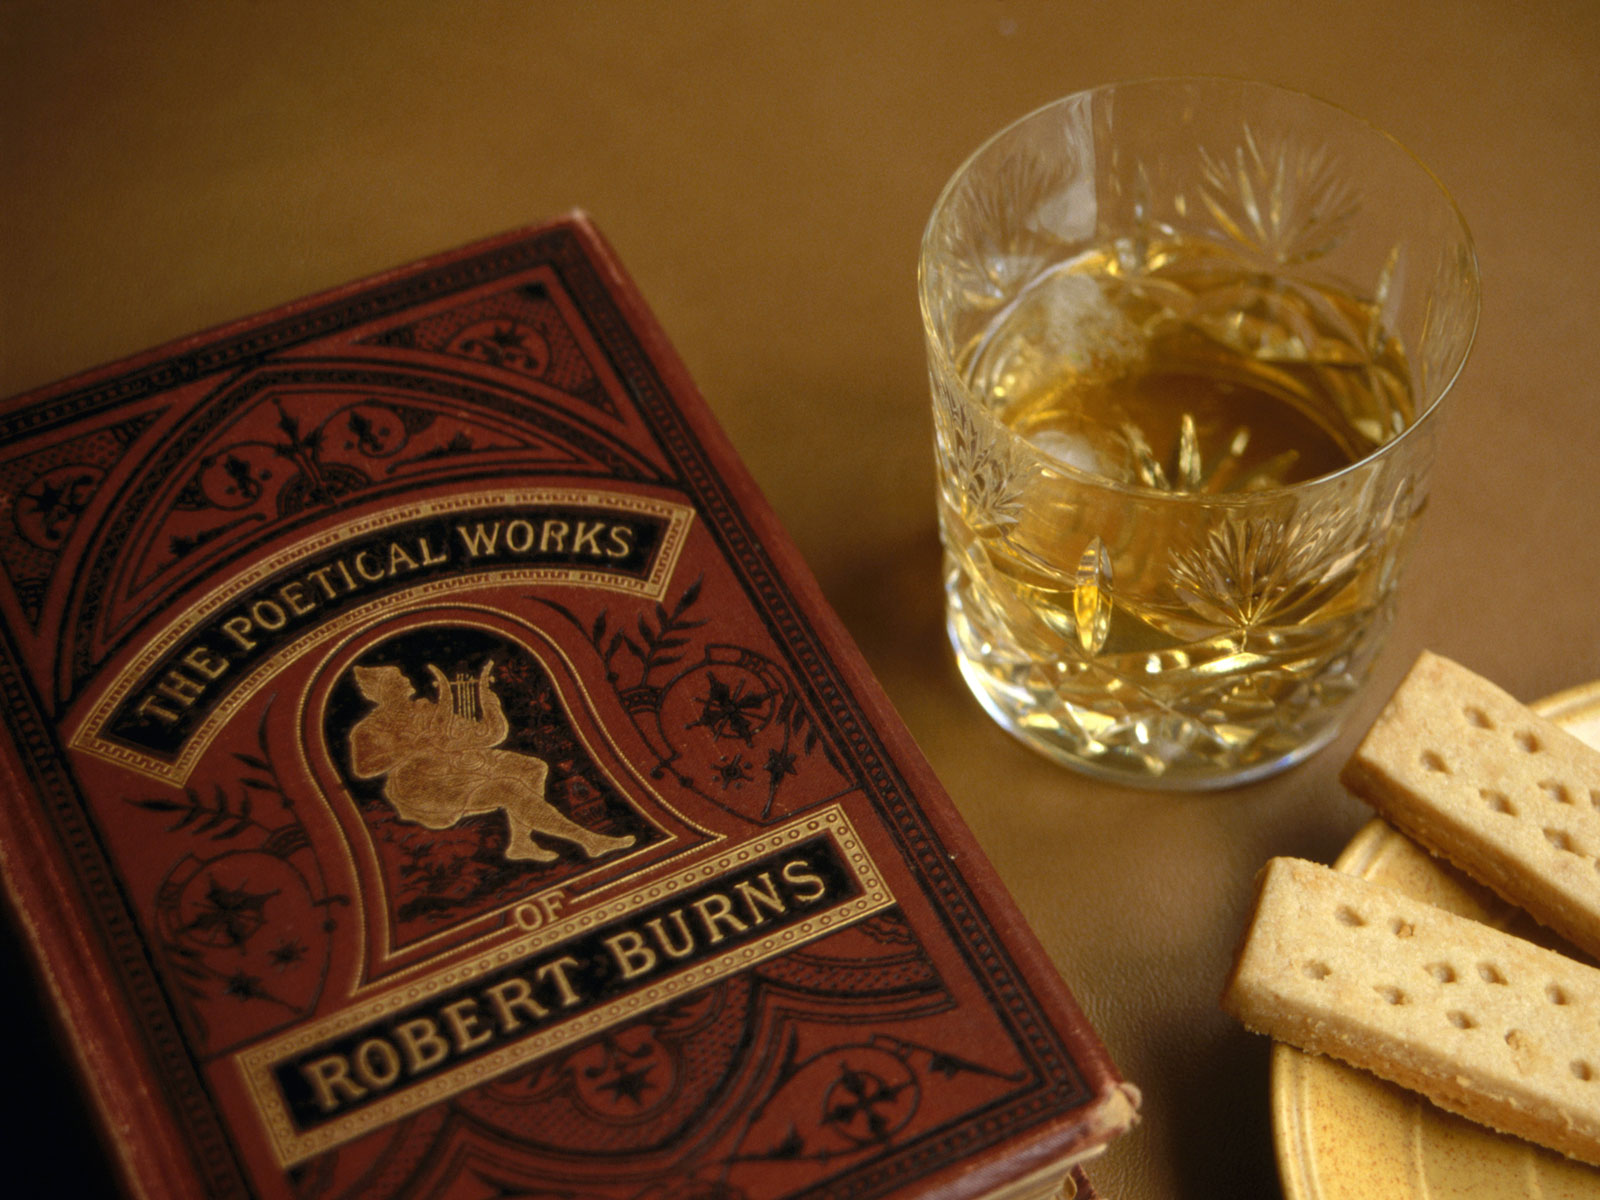 Literary-Inspired Drinks Aren't Just Another Trend